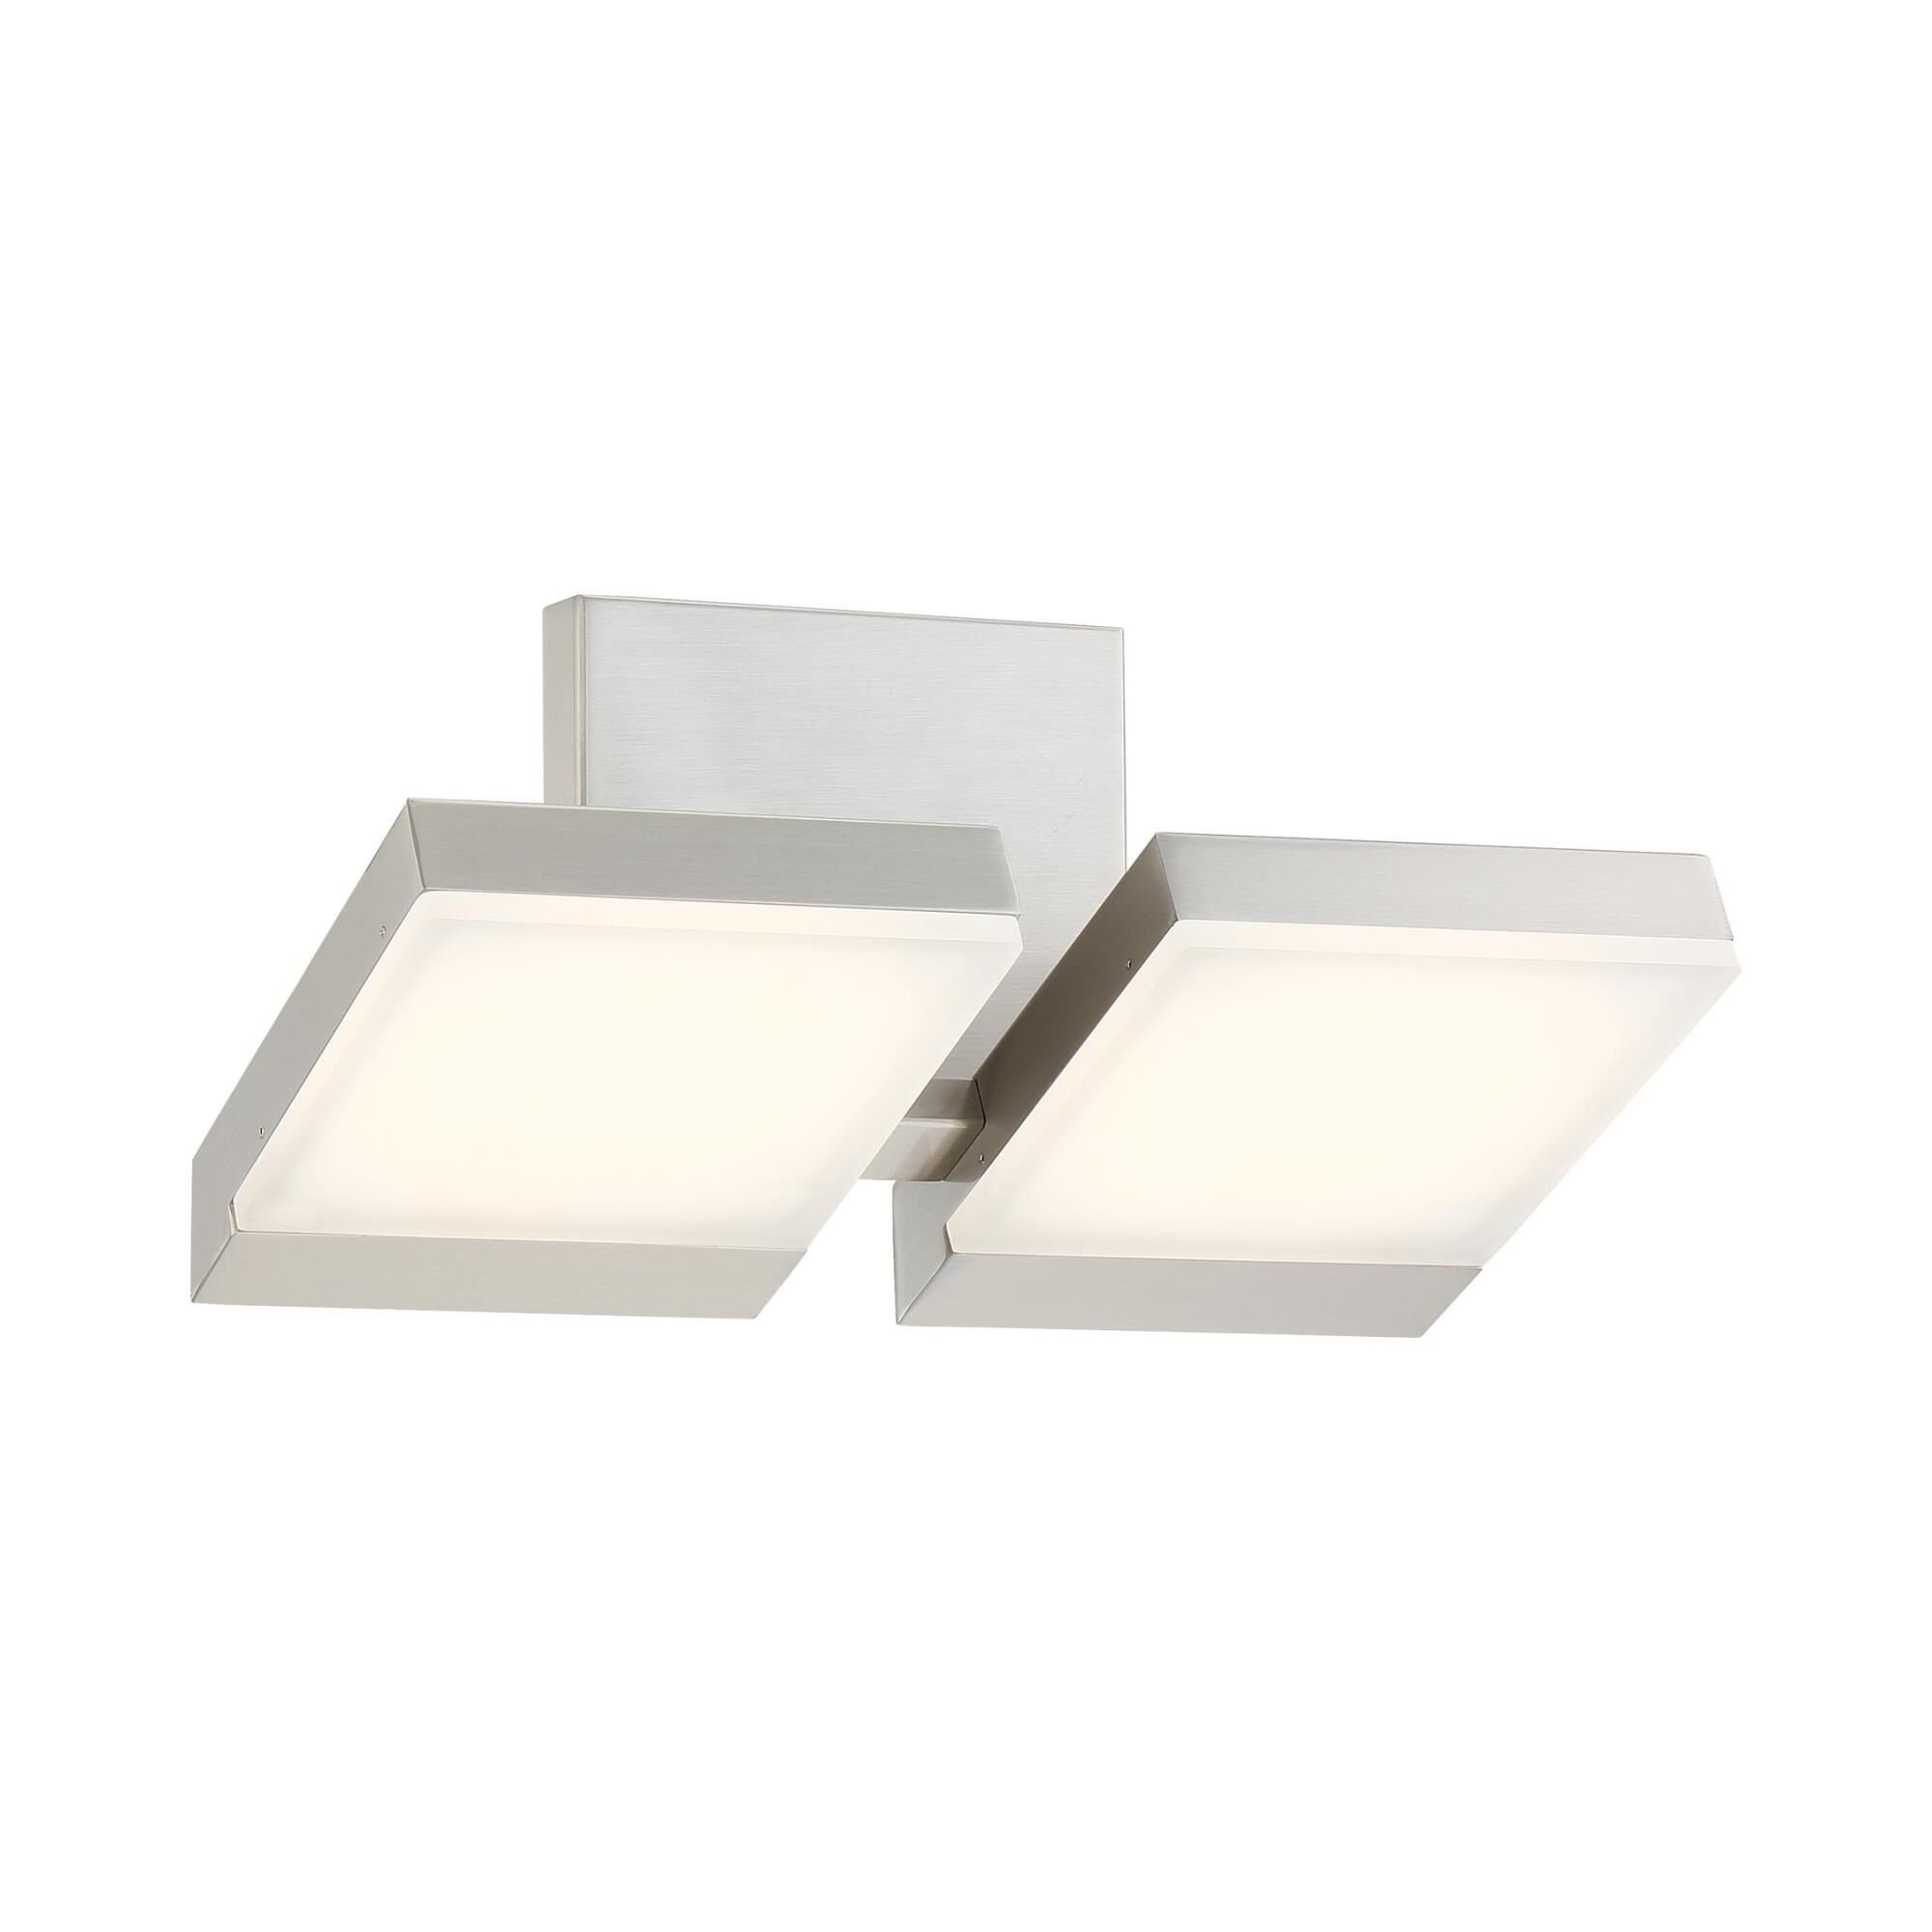 Kovacs Angle 13 Inch 2 Light Led Bath Vanity Light Angle - P1252-084-l - Transitional